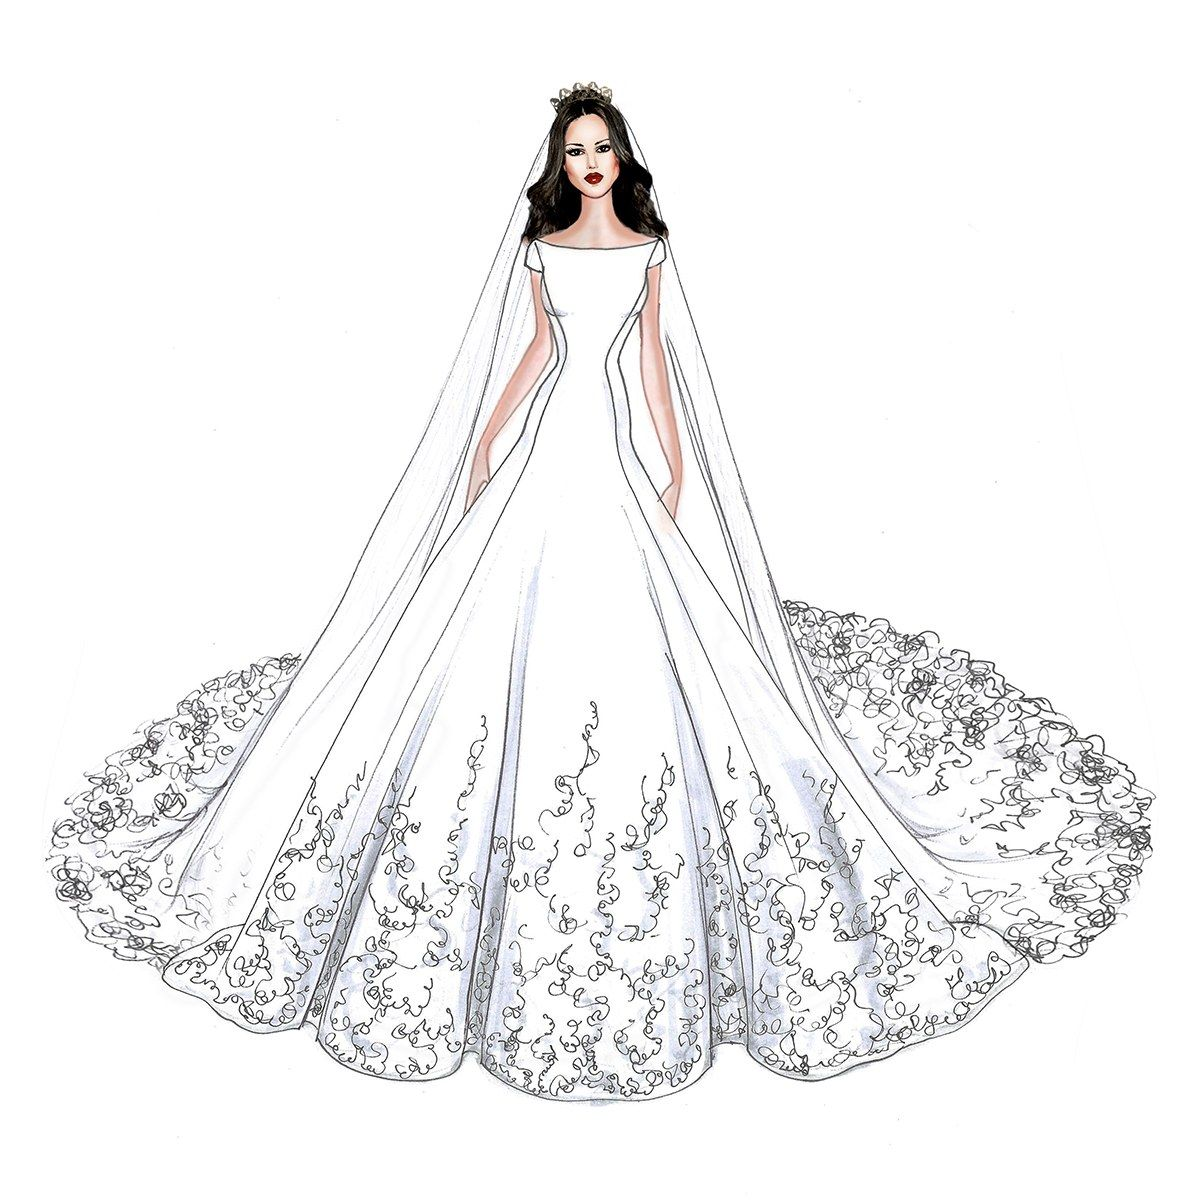 Meghan Markle S Wedding Dress Will Look Like This According To These Desig Wedding Dress Drawings Fashion Illustration Sketches Dresses Wedding Dress Sketches